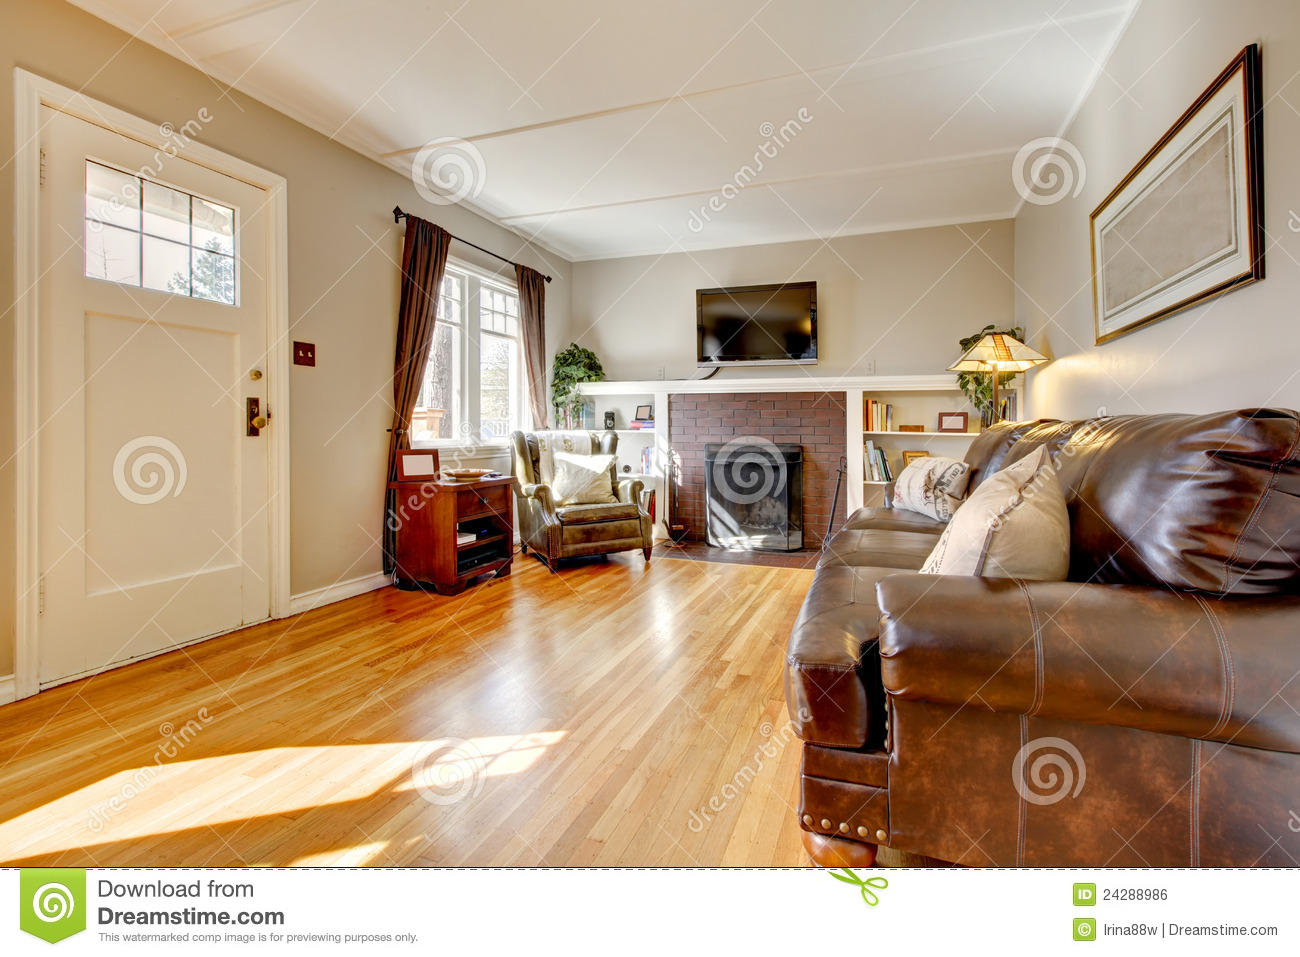 Living Room With Beige Walls, Leather Sofa And TV. Royalty Free Stock Image -...